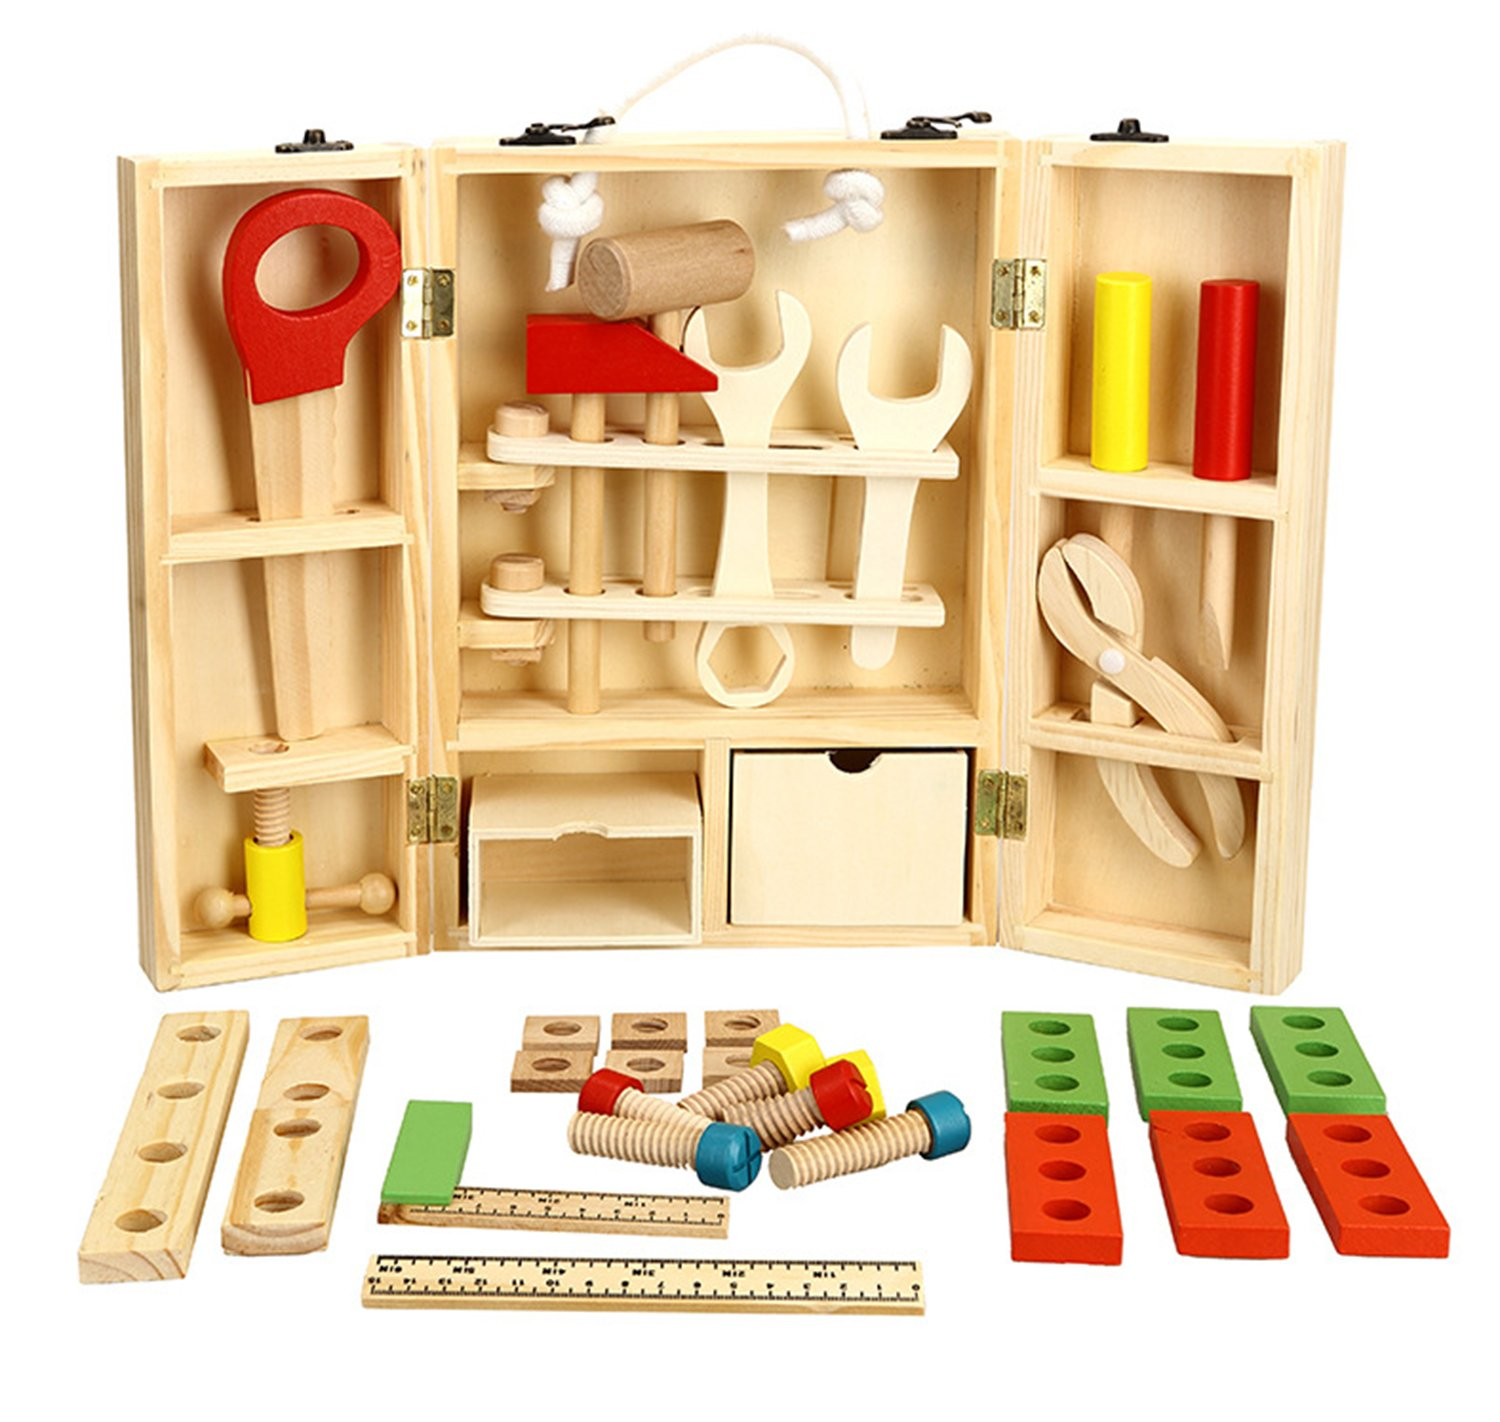 Lewo Wooden Tool Toys Pretend Play Toolbox Accessories Set Educational Construction Toys for Kids by Lewo